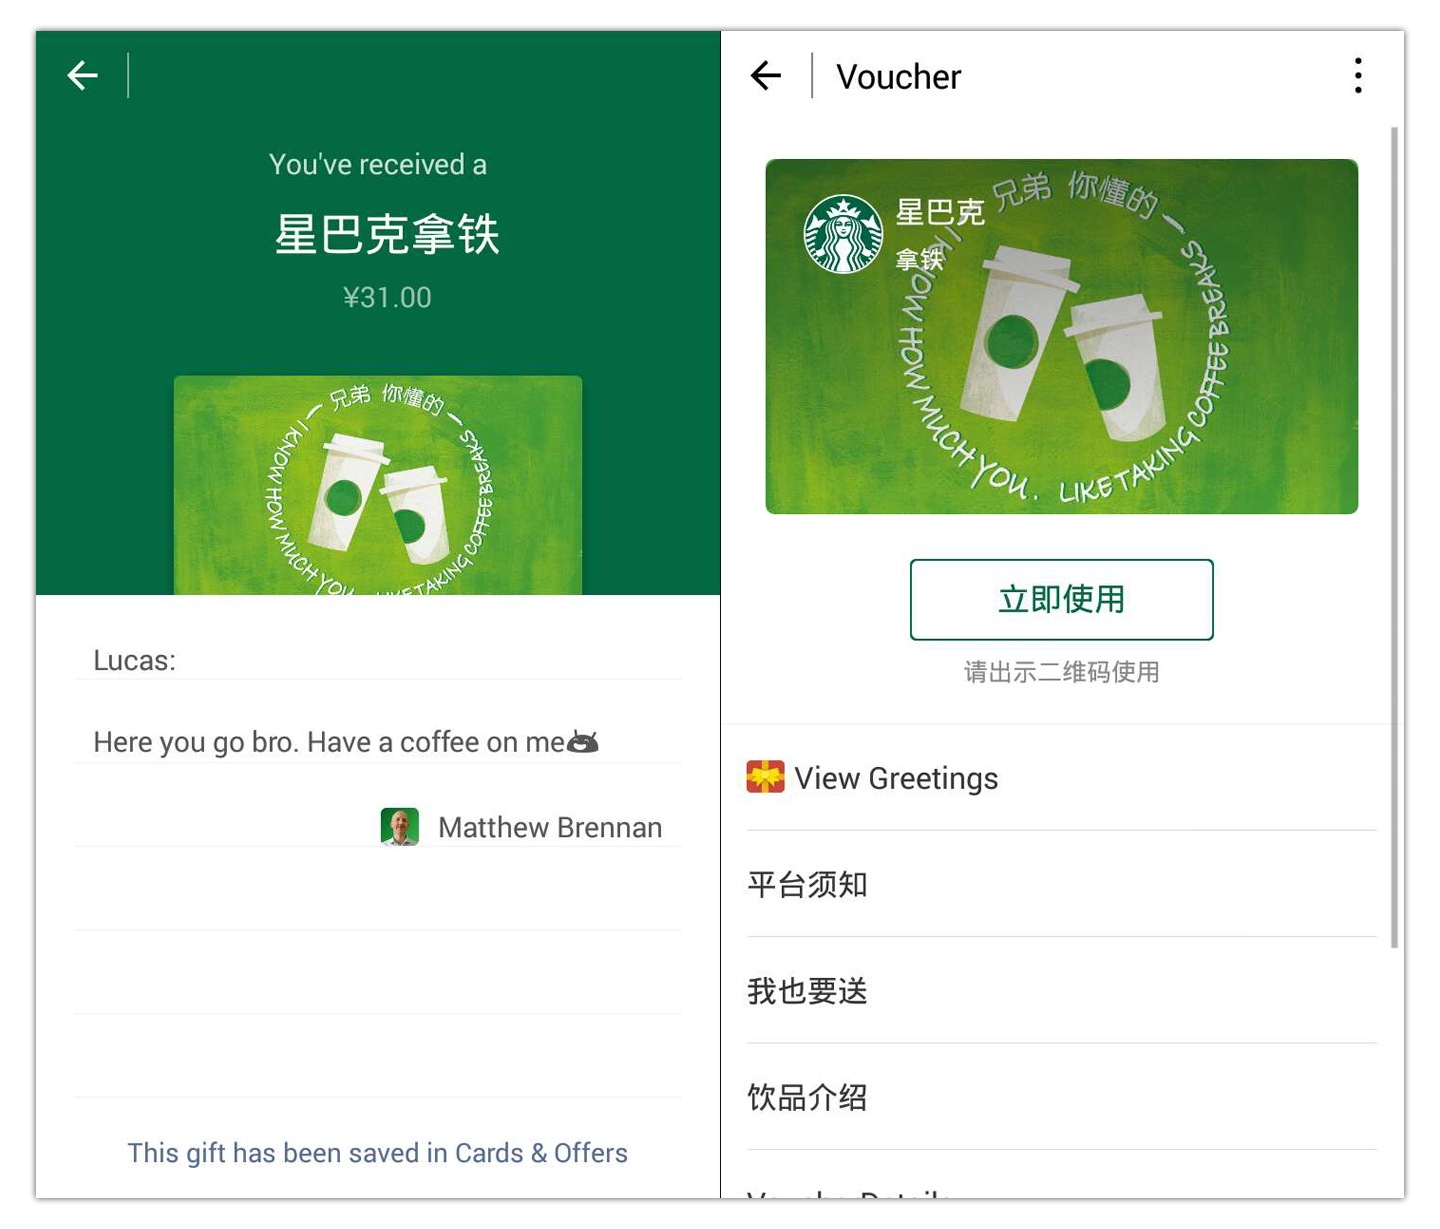 Starbucks WeChat Gifting Card